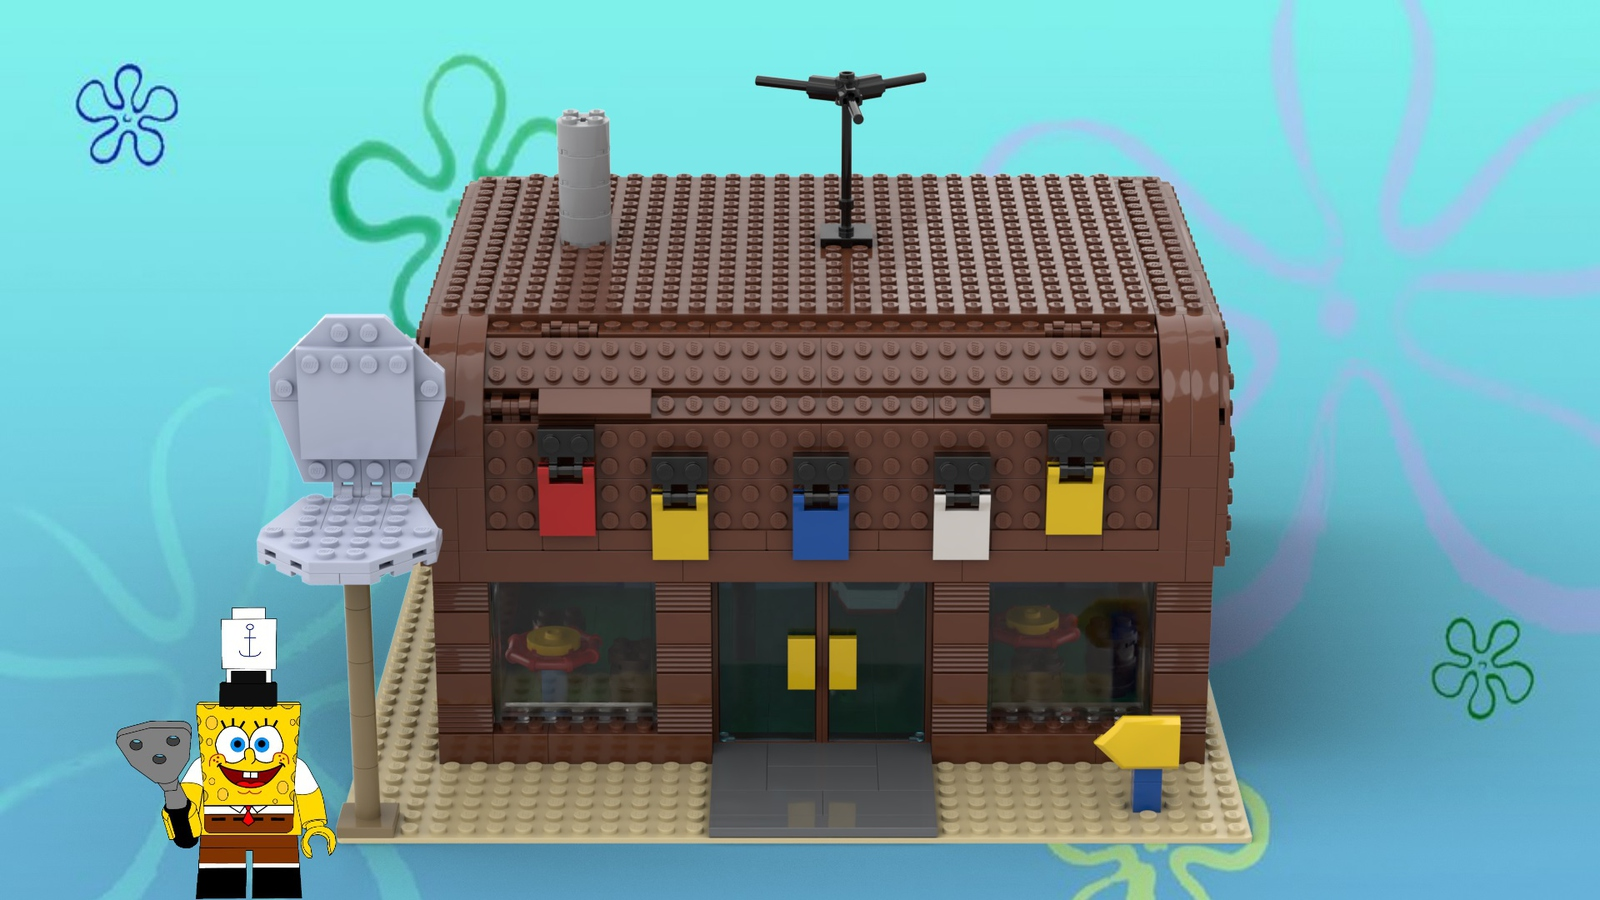 Lego Ideas Product Ideas Spongebob Squarepants The Krusty Krab